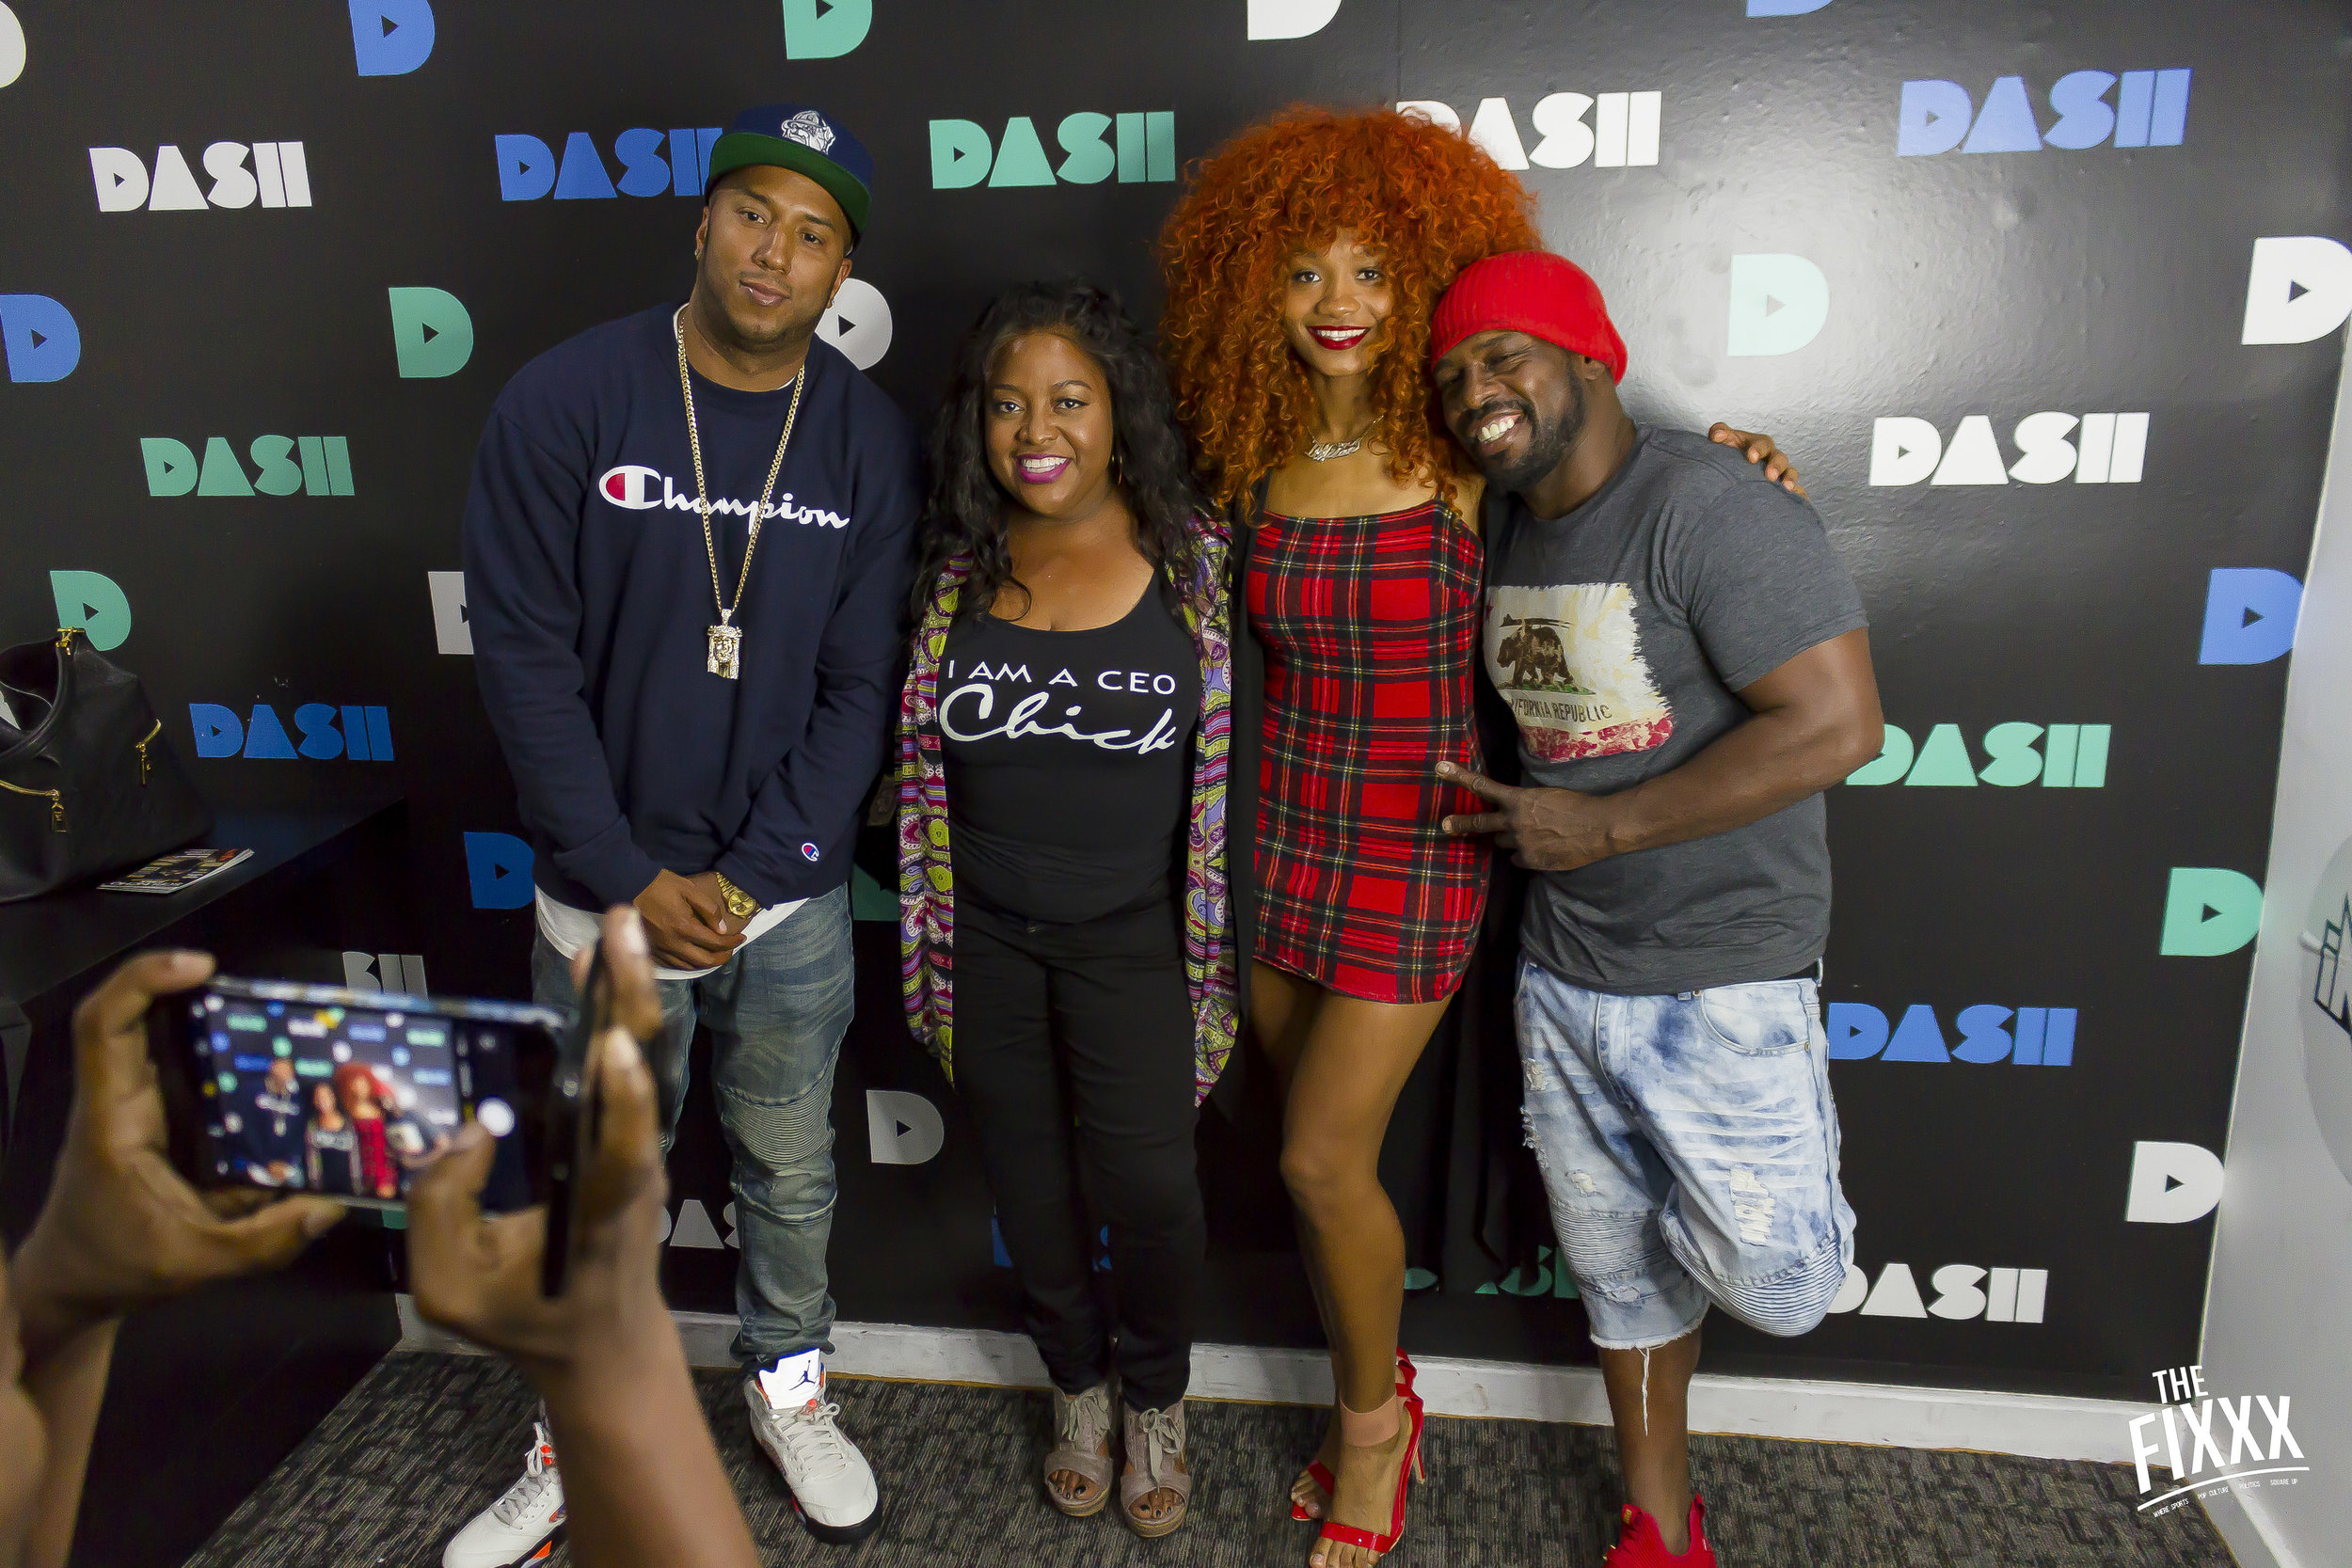 The Fixxx on Dash Radio - 08-31-18_35.jpg